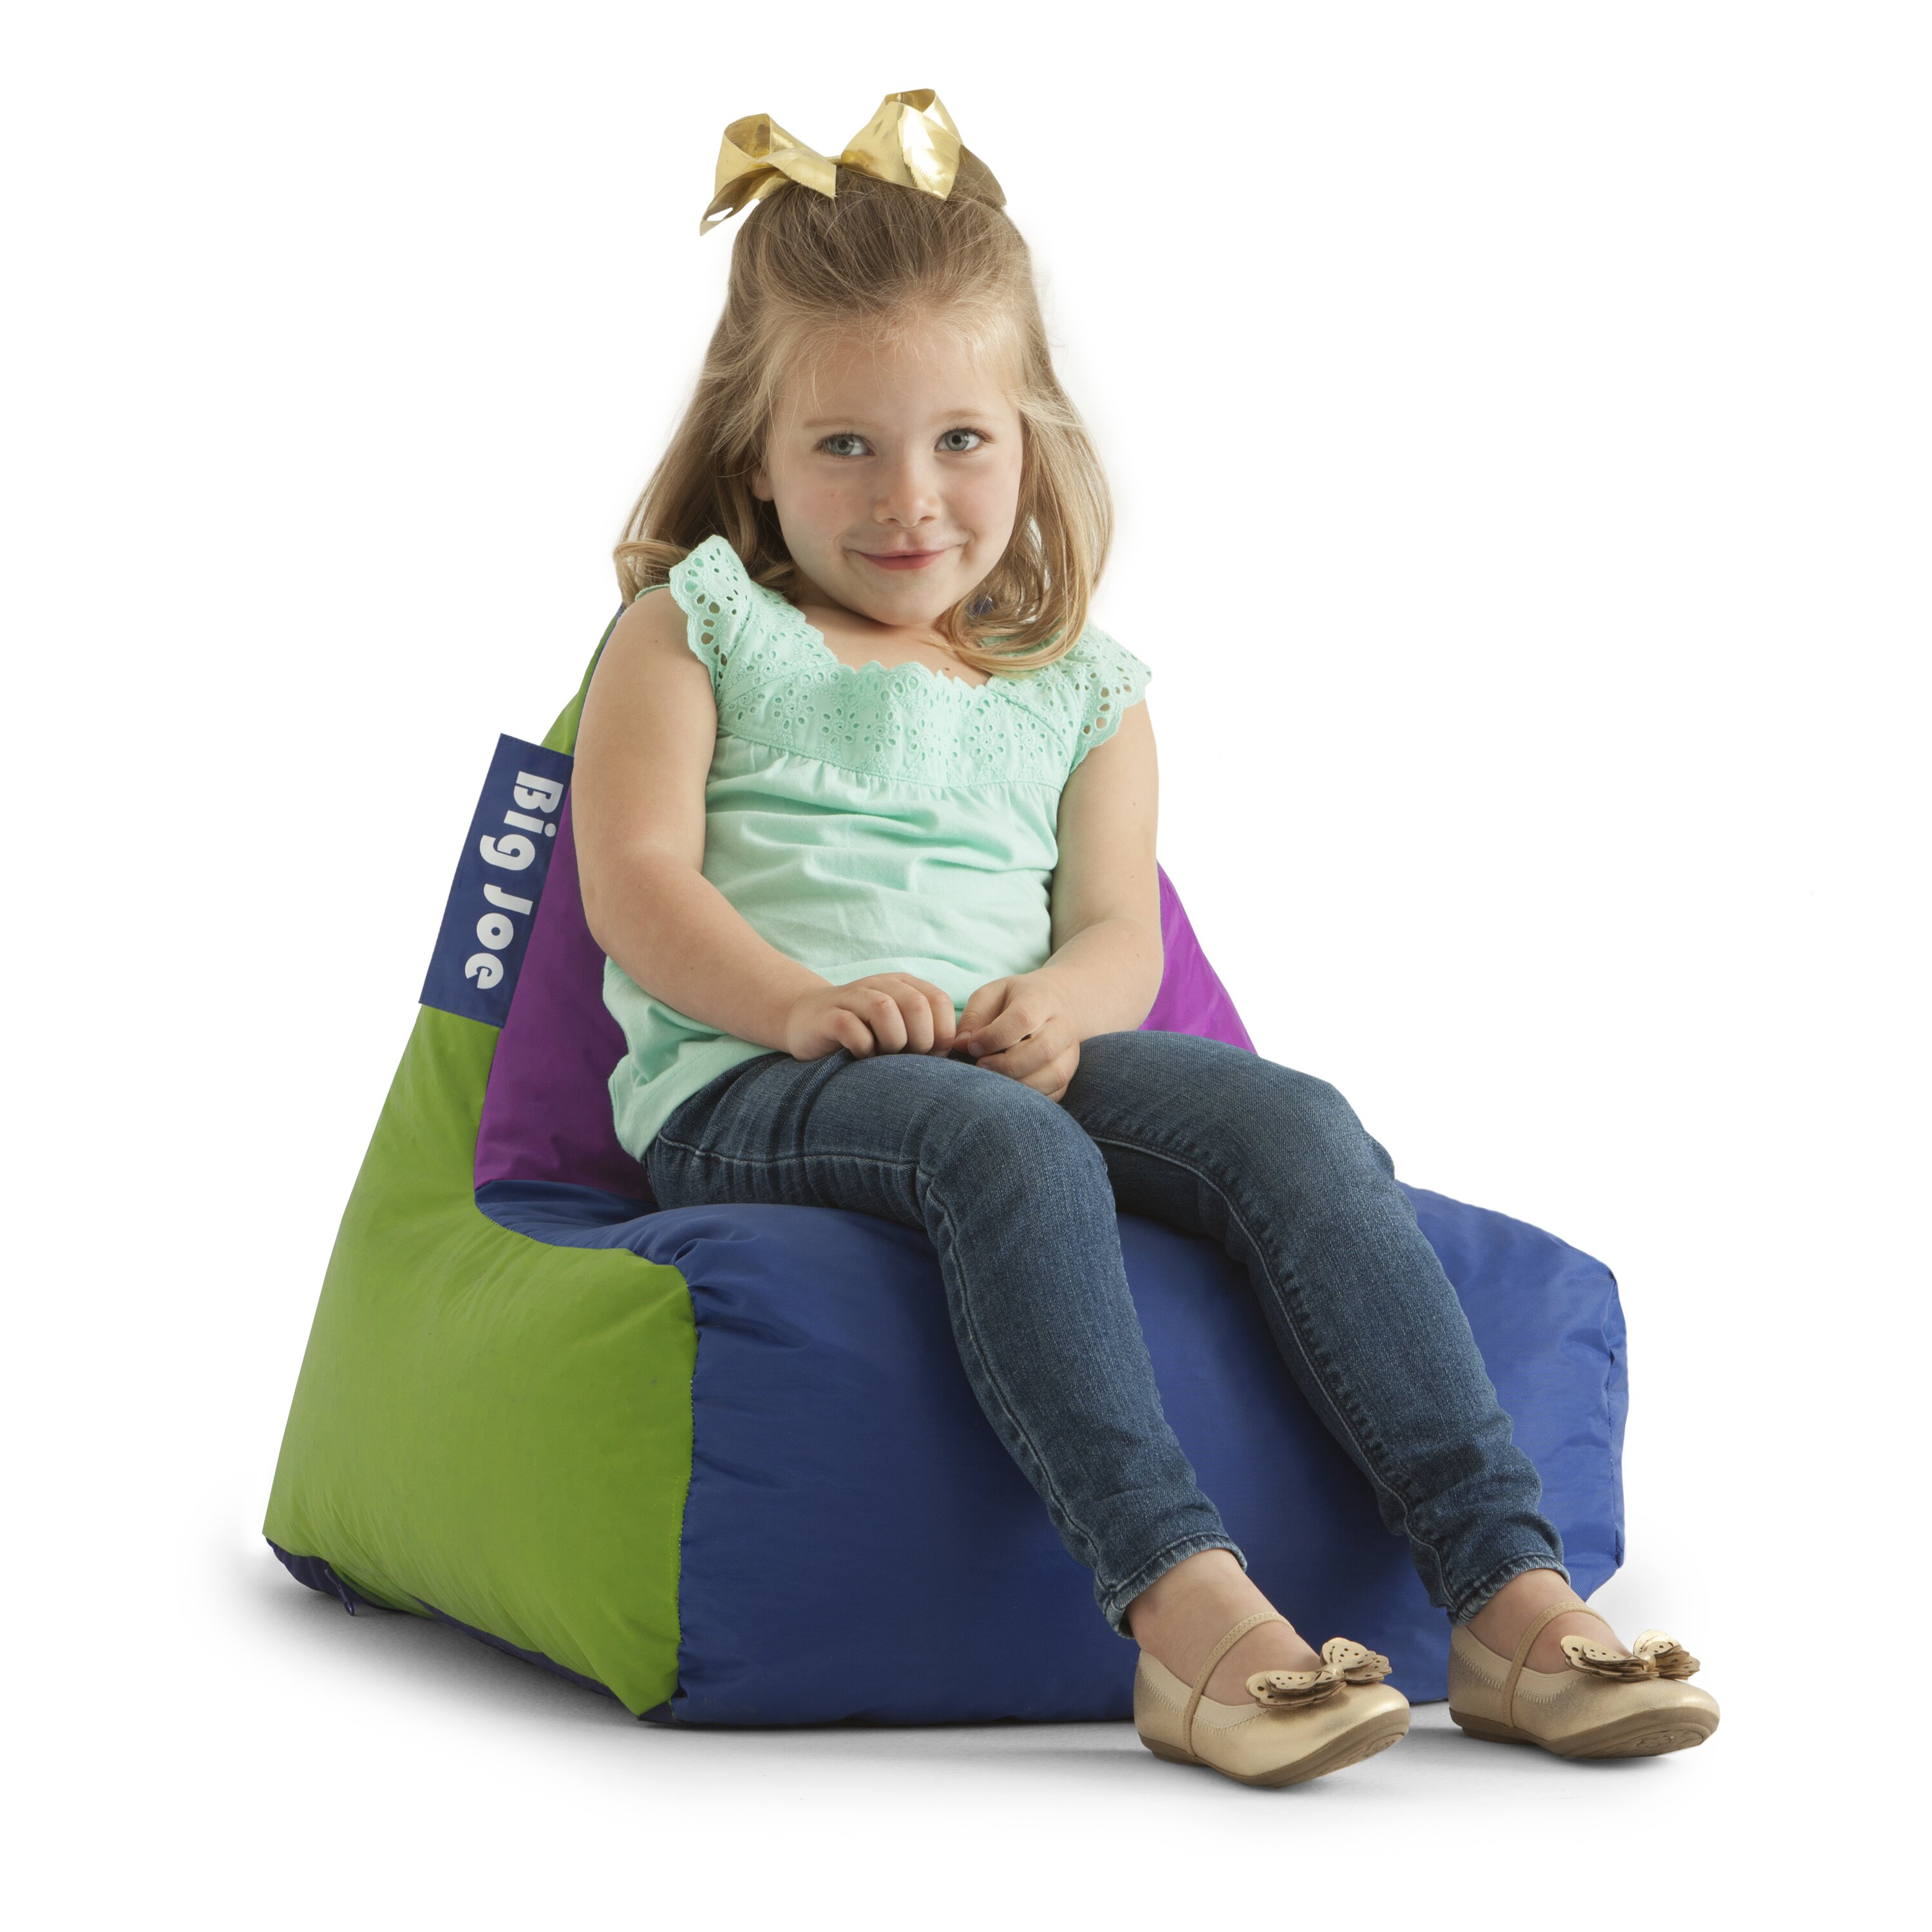 Comfort Research Big Joe Banana Bean Bag Lounger u0026 Reviews : Wayfair